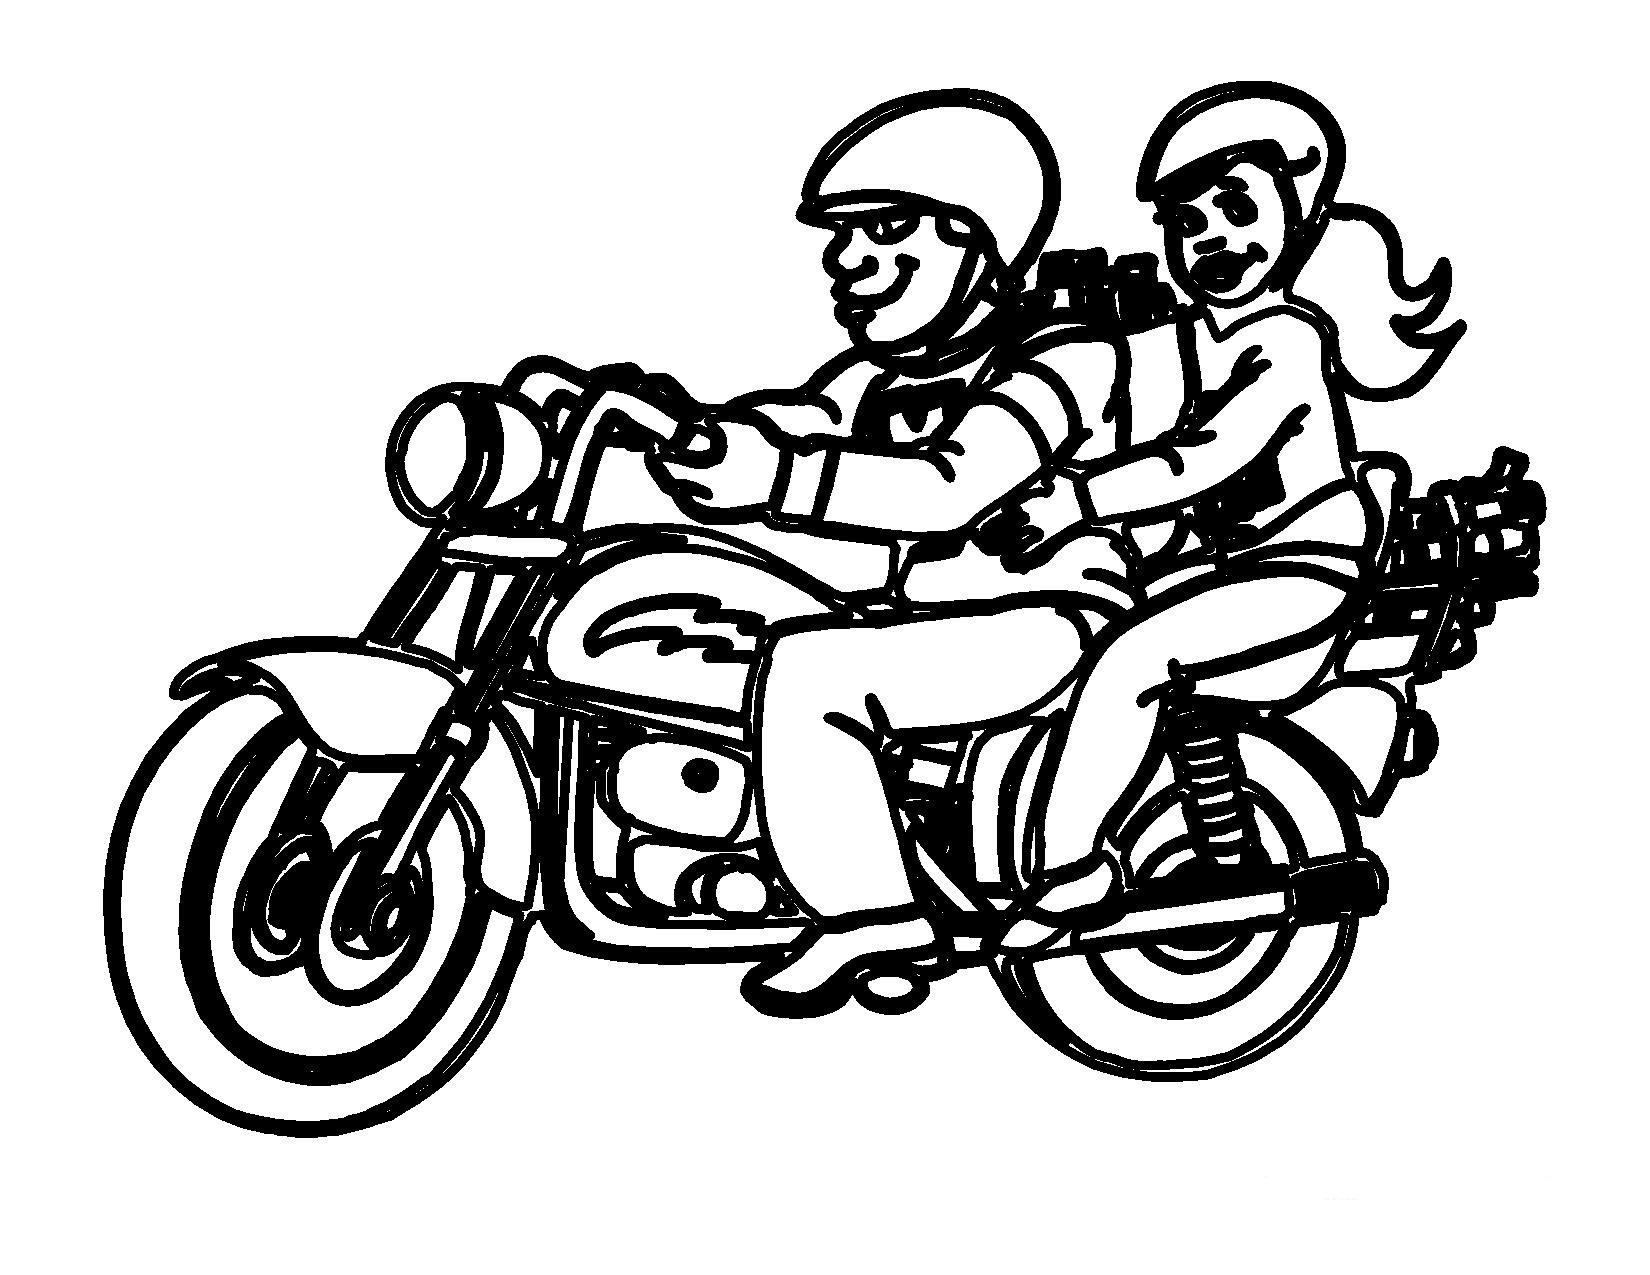 motorbike colouring motorbike coloring pages to download and print for free motorbike colouring